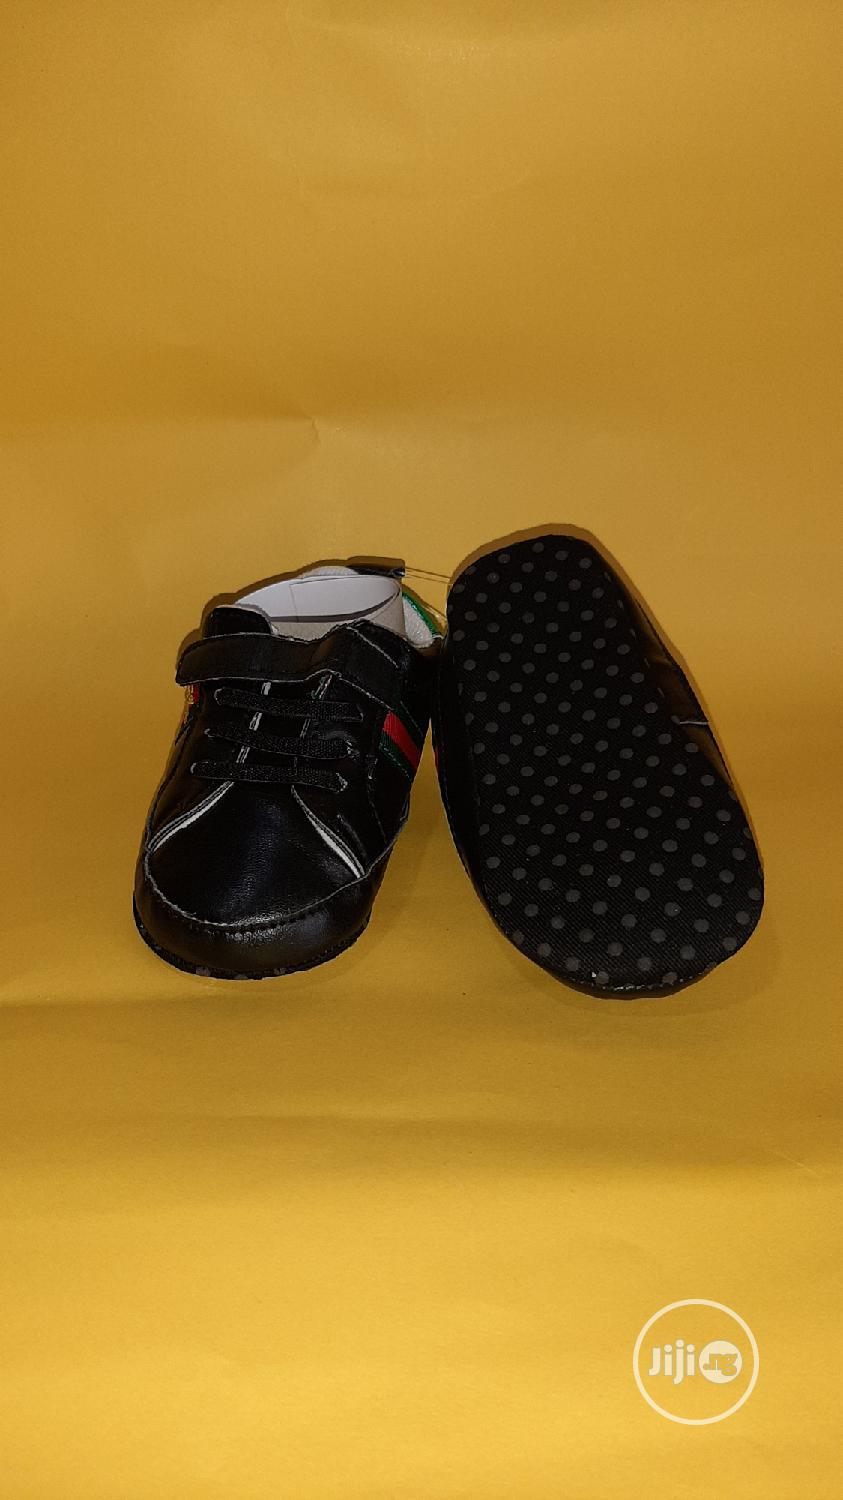 Baby Boy Sneakers | Children's Shoes for sale in Agboyi/Ketu, Lagos State, Nigeria